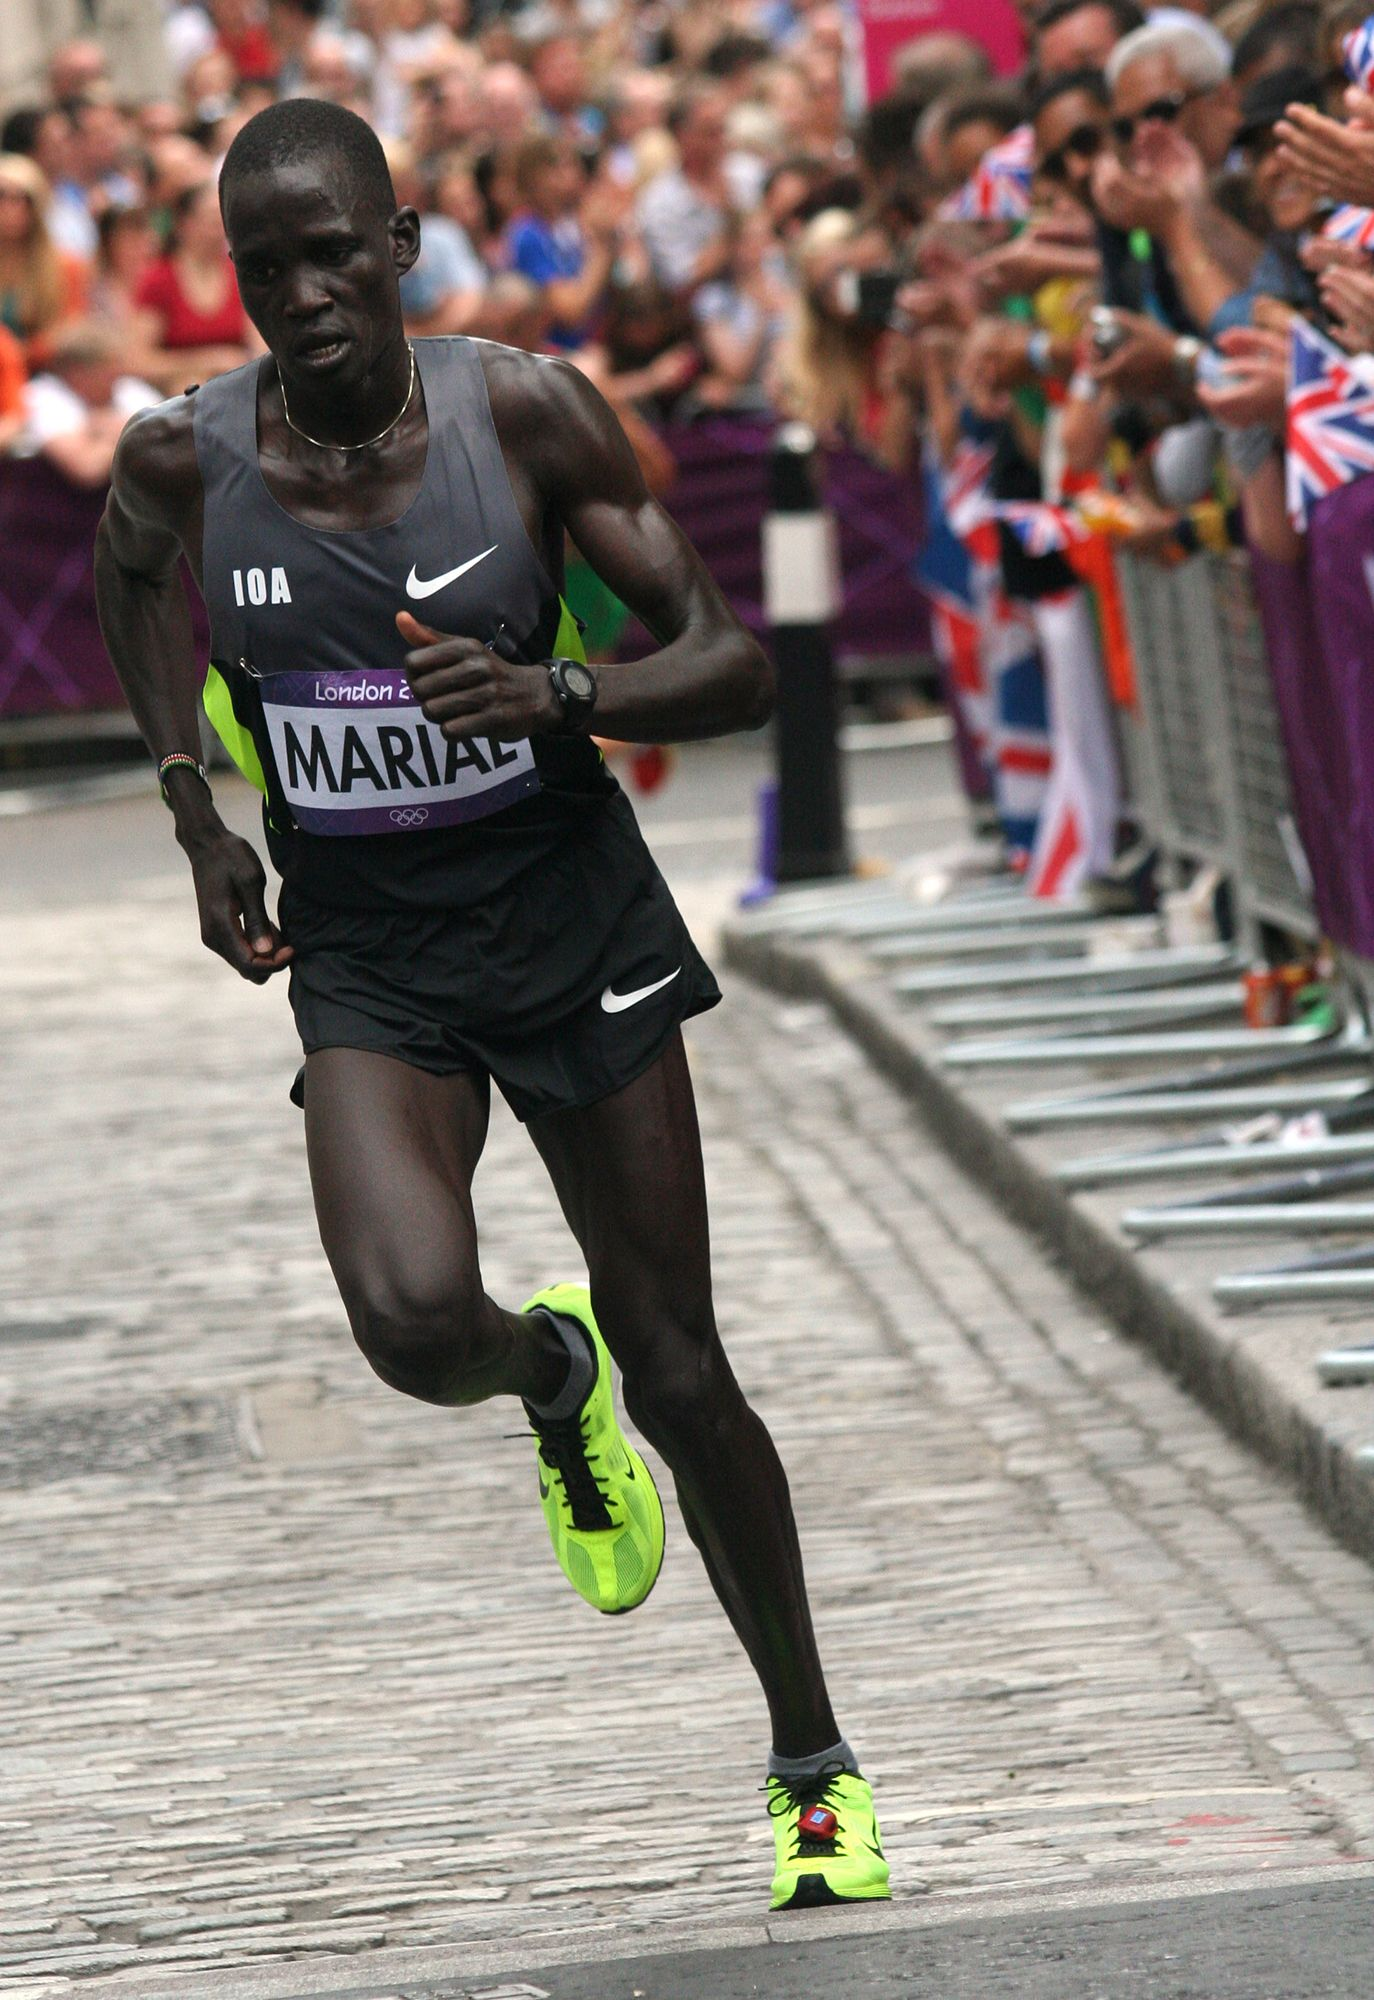 Marathoner Who Ran Under Olympic Flag in 2012 Suspended By South Sudan